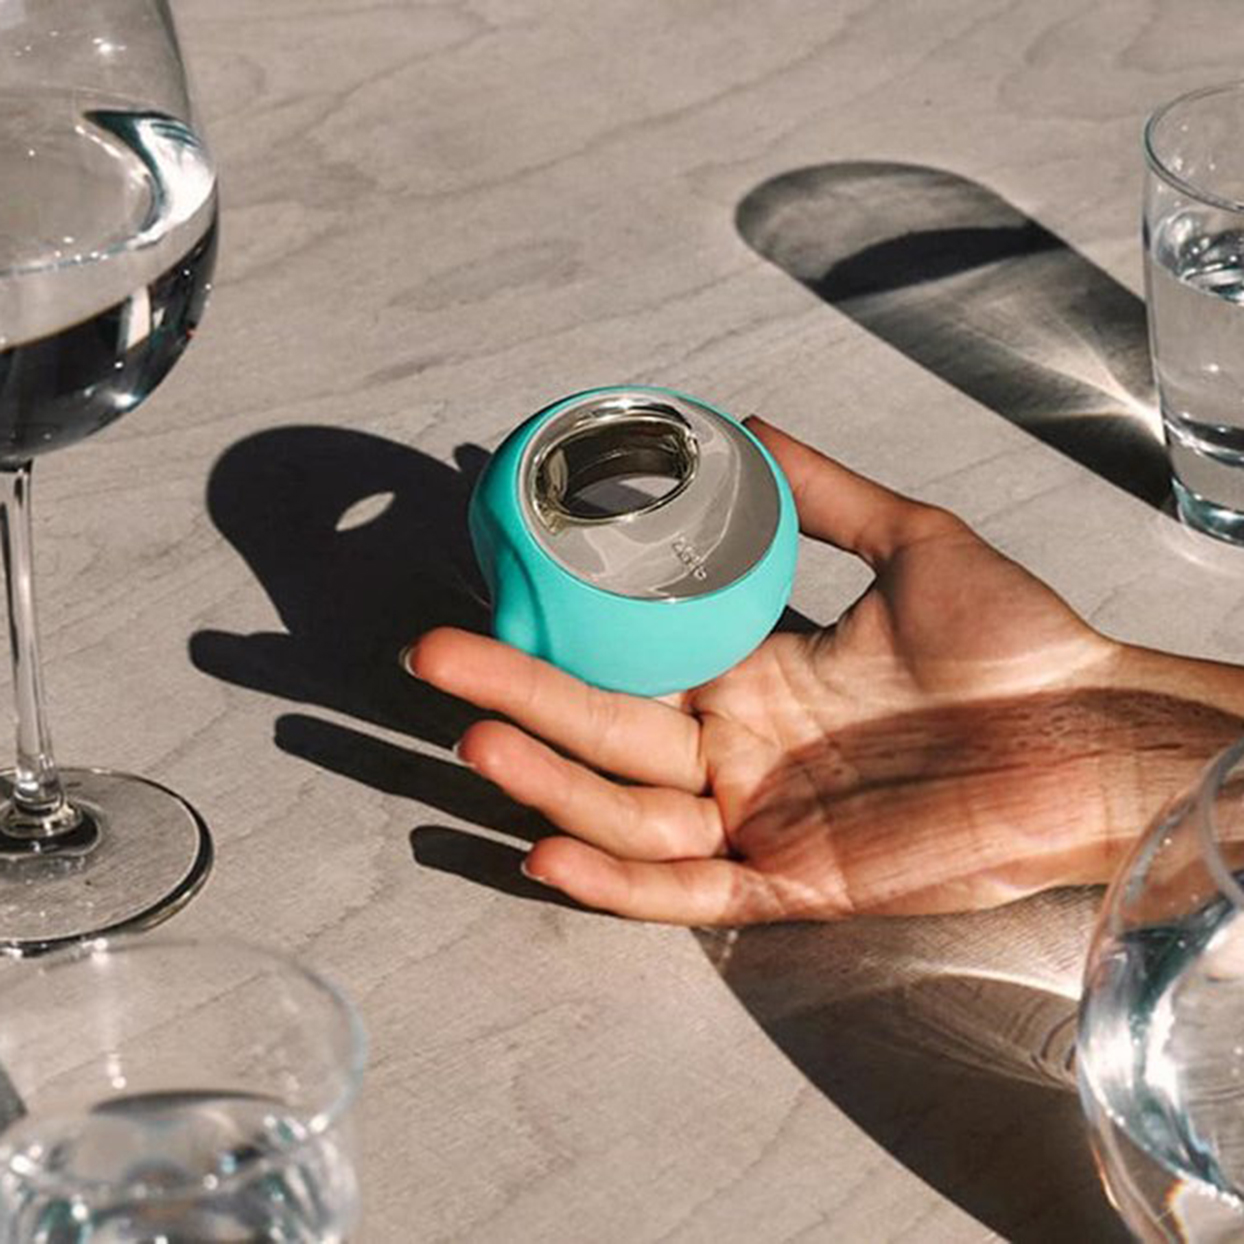 Lelo Ora 3 Vibrator in aqua blue with wine glasses